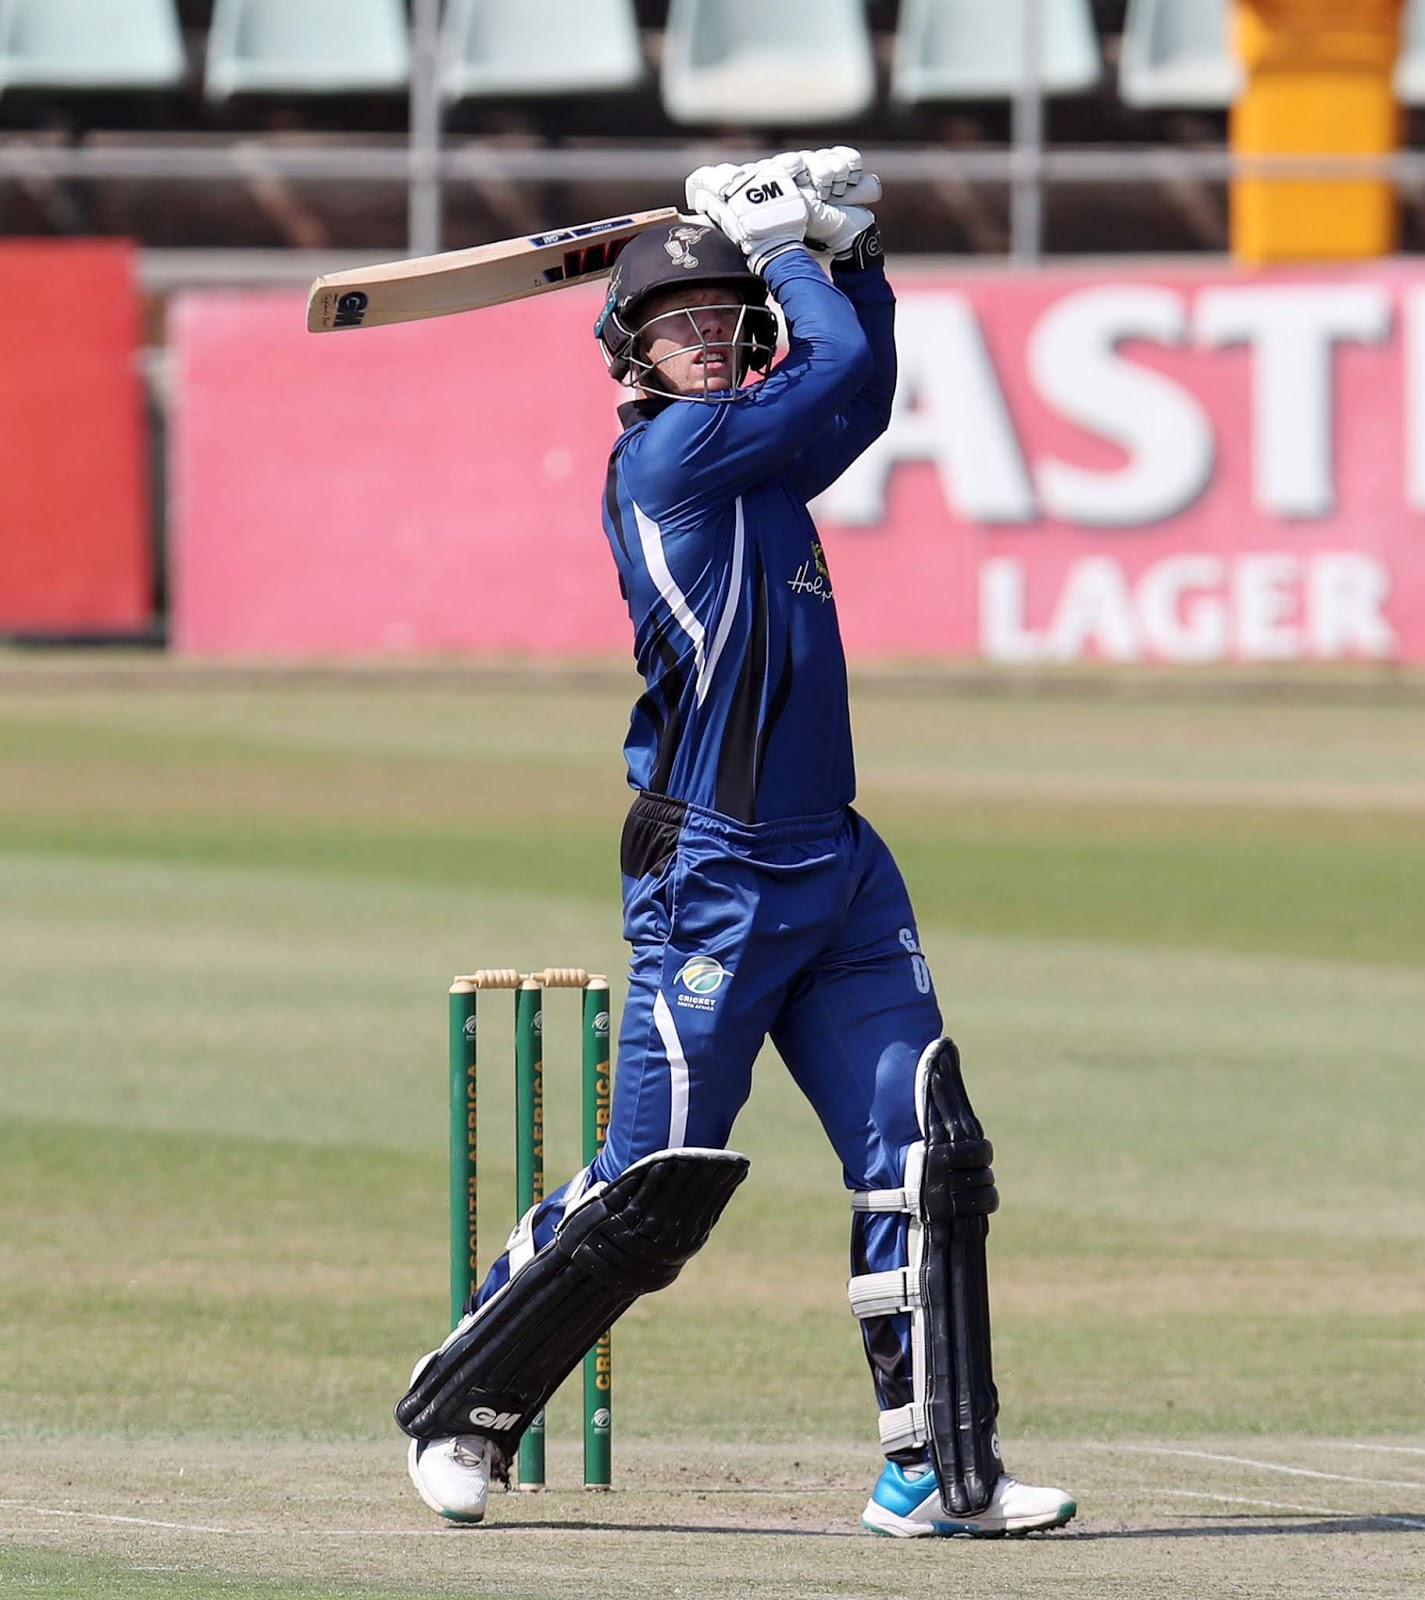 Grant Roelofsen scored a career-best 79 for the Hollywoodbets KZN Inland side in the CSA Provincial T20 Cup final against Easterns in Benoni on Tuesday, in the process becoming the tournament's top ruin-scorer.